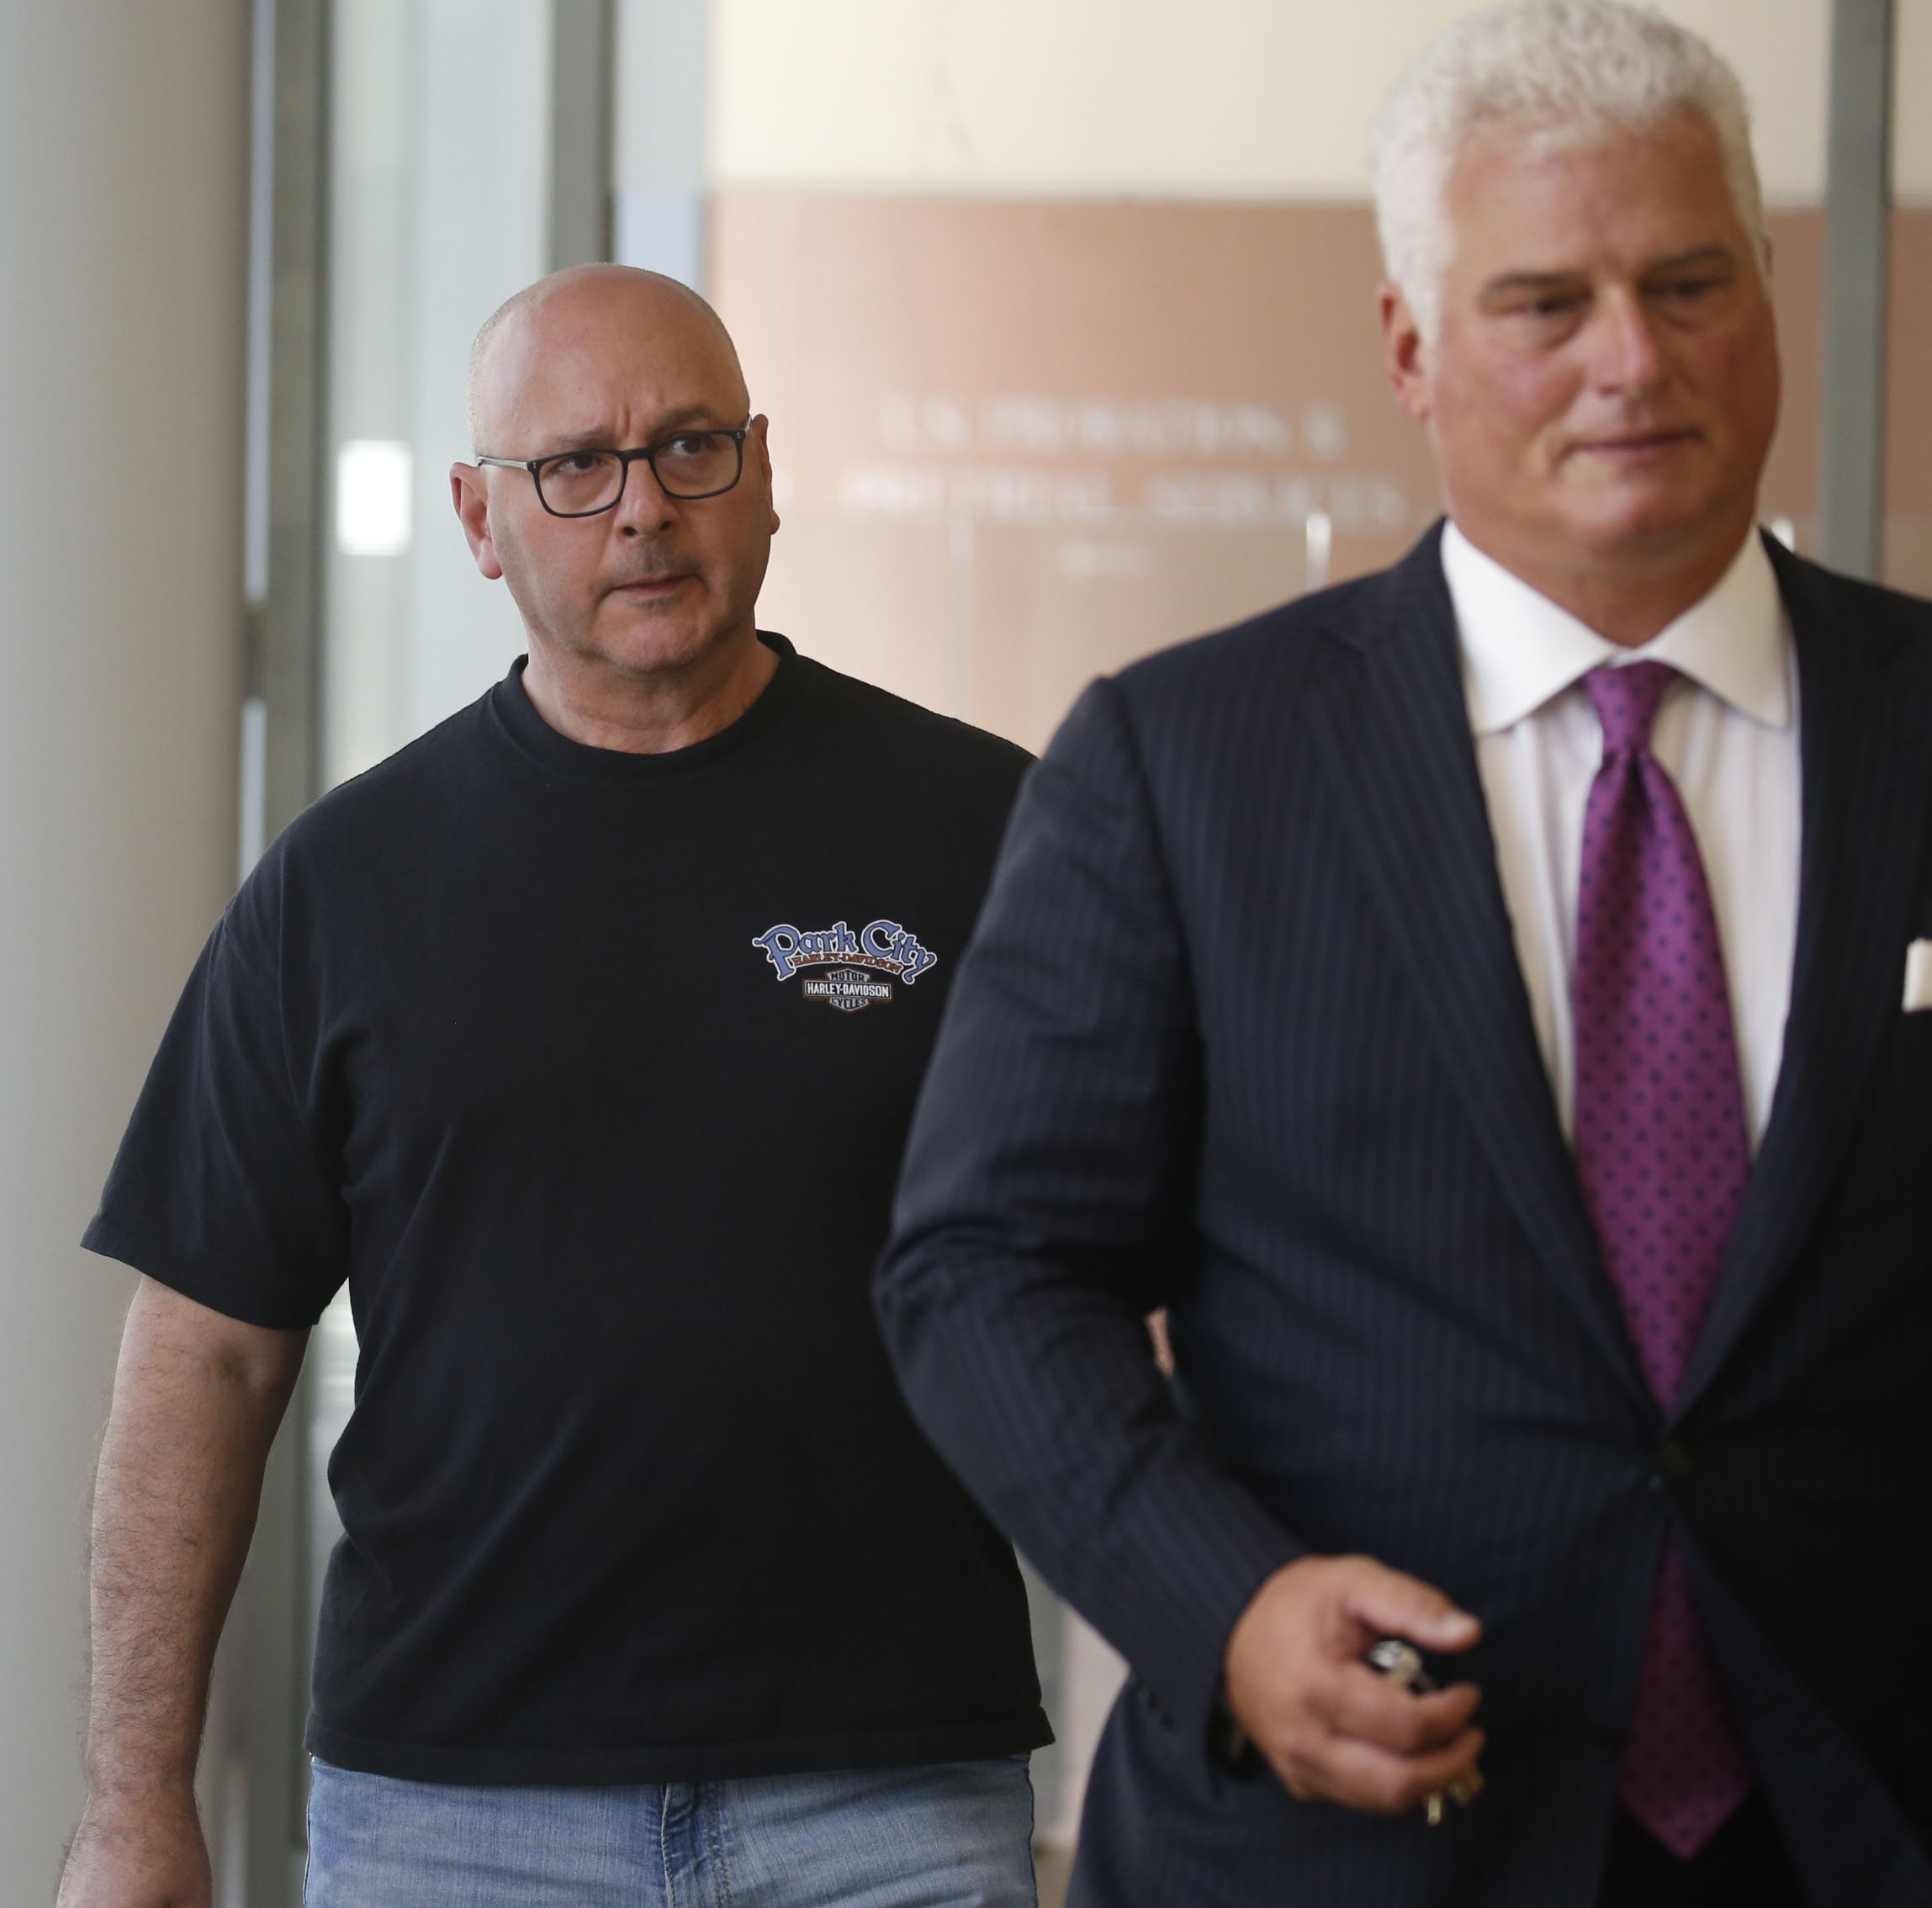 Louis P. Ciminelli, left, gets escorted out of court with his attorney Daniel C. Oliverio after being arraigned on charges of conspiracy to commit wire fraud, wire fraud and bribery at Buffalo federal court in 2016. The bribery charge has since been dropped. (News file photo)